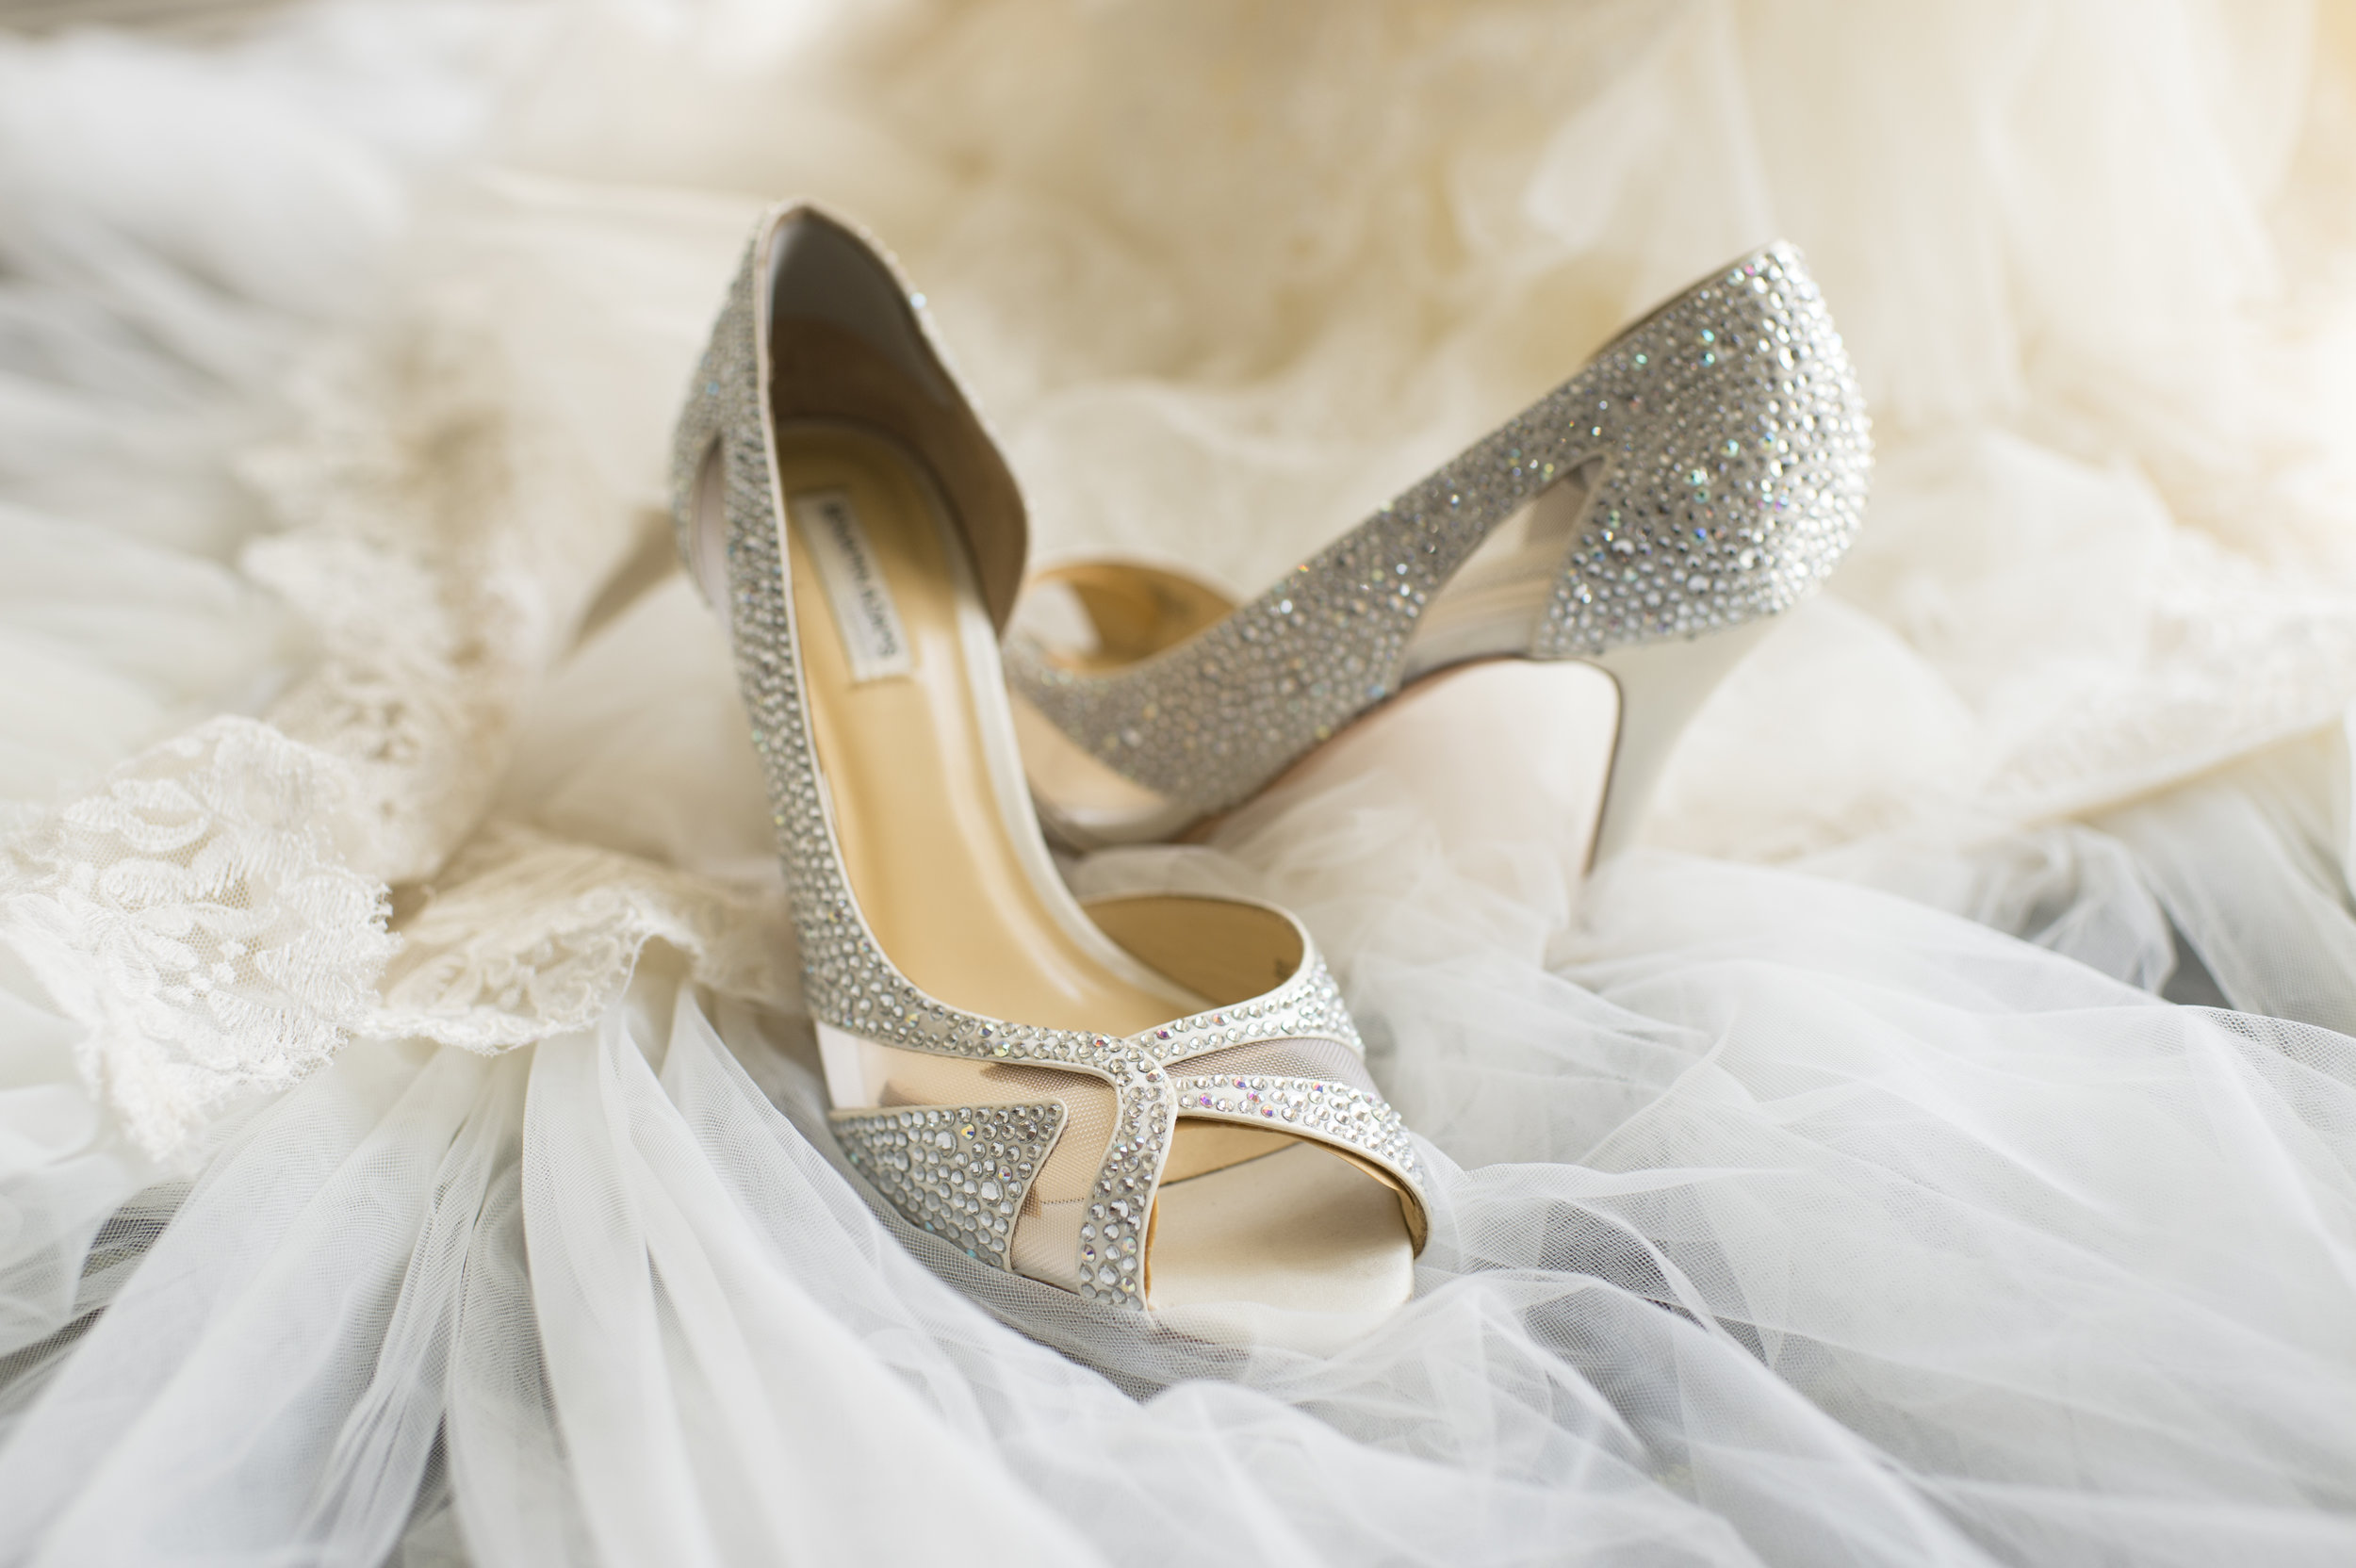 Whit Wedding Shoes - A Romantic Bel Air Bay Club Ocean-View Wedding - Southern California Wedding - Kevin Dinh Photography